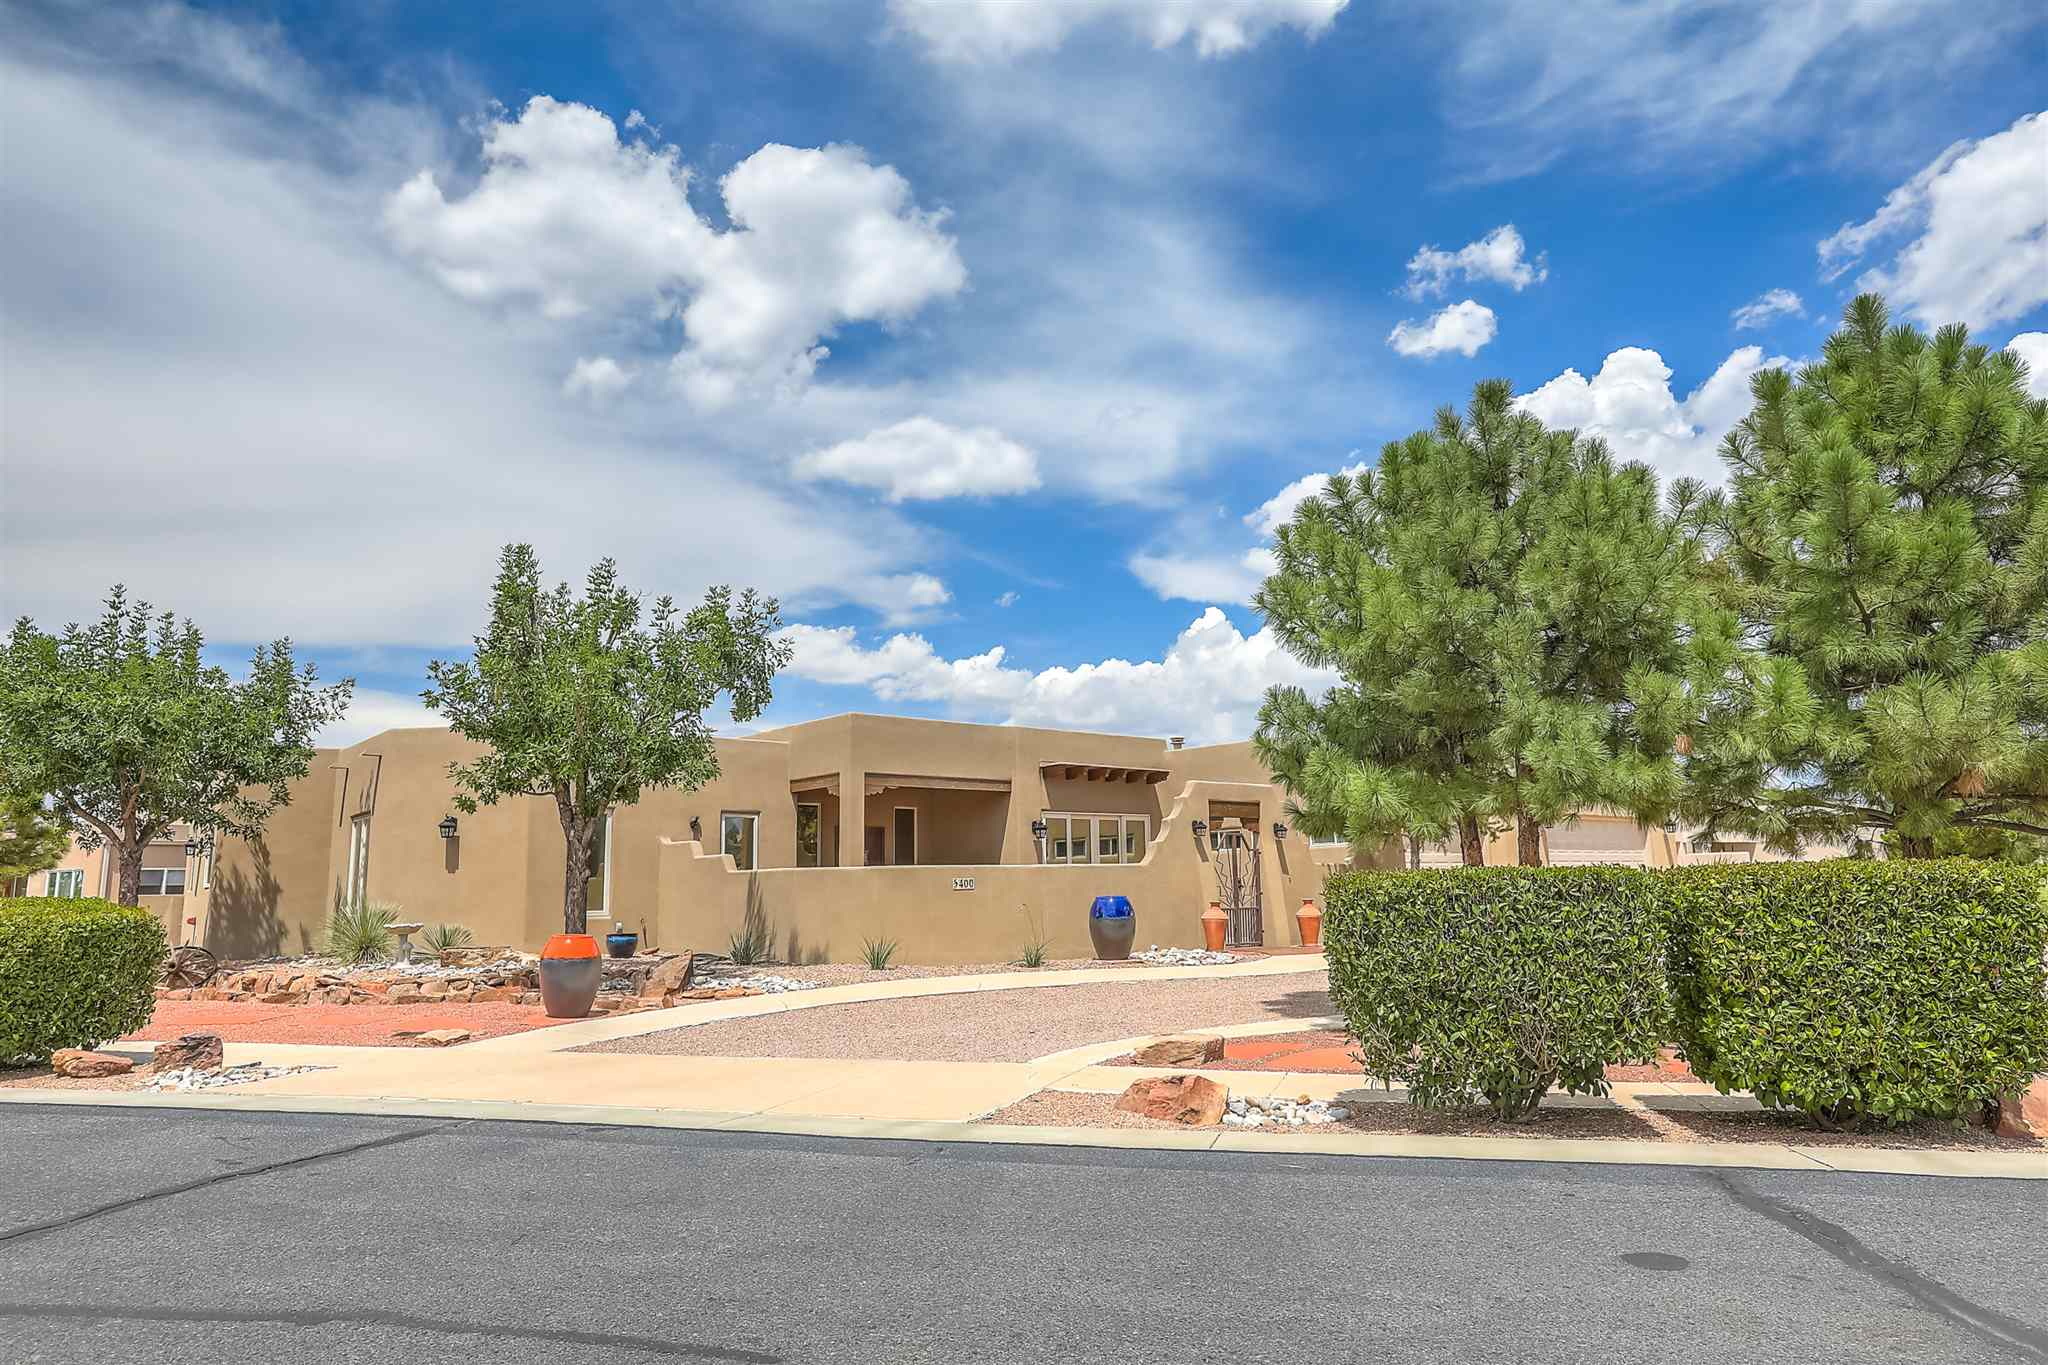 Fabulous location in this beautiful custom Pueblo home located in a premier Old Town gated community called Gardens on the Rio Grande. Walk to hiking, bike trails, museums, dining and retail. Close to Downtown and I-40 at Rio Grande. Easy access to the freeways! Enter the private gates to the interior courtyard with decorative fountain to the over sized entry. This home boasts two master suites perfect for those who want the extra space. Each master has a private over sized bath and large closets. Great room is over sized with fluid floor plan to outdoor patio, formal dining and kitchen area perfect for entertaining. Formal dining area opens to front courtyard for indoor/outdoor parties. Back patio is extended for summer enjoyment and looks out to the common area green space. Three car over sized garage includes extra space for small work-shop. Mature landscaping provides you an oasis right in your own back-yard with automatic bubblers! This is a great home that lets you lock and leave - or treasure every moment inside.